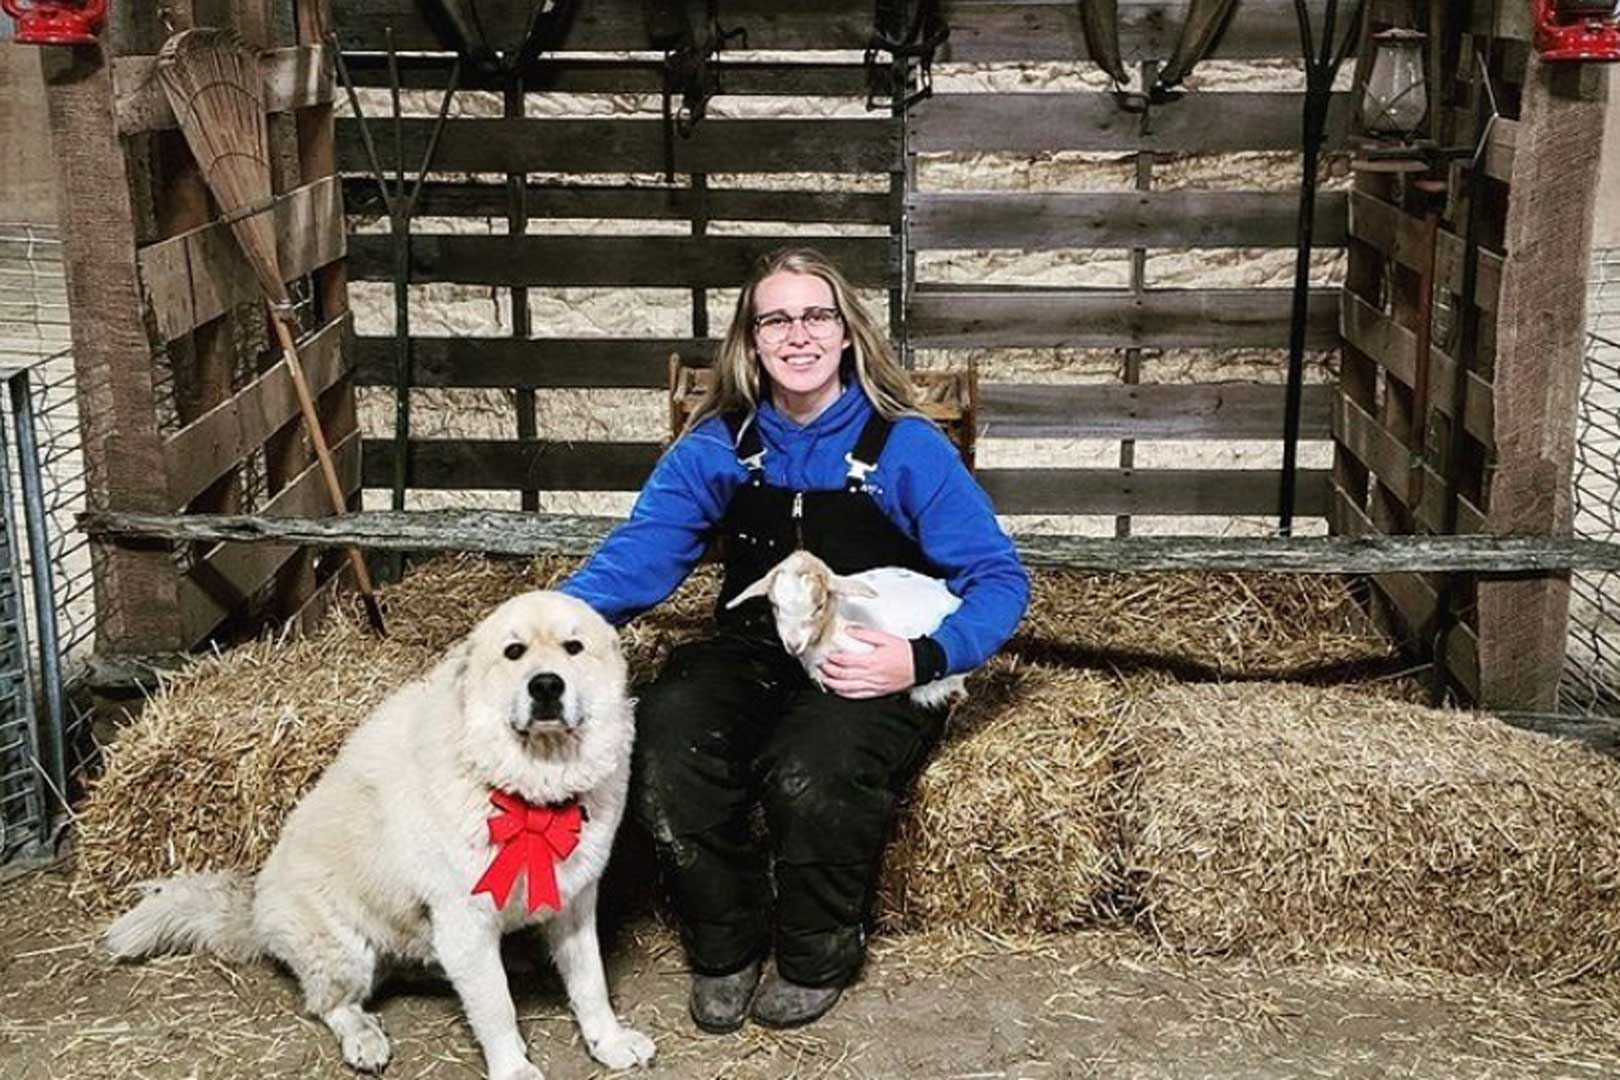 Kathryn and the Christmas Pup on the Farm at Lionel's Pony Farm